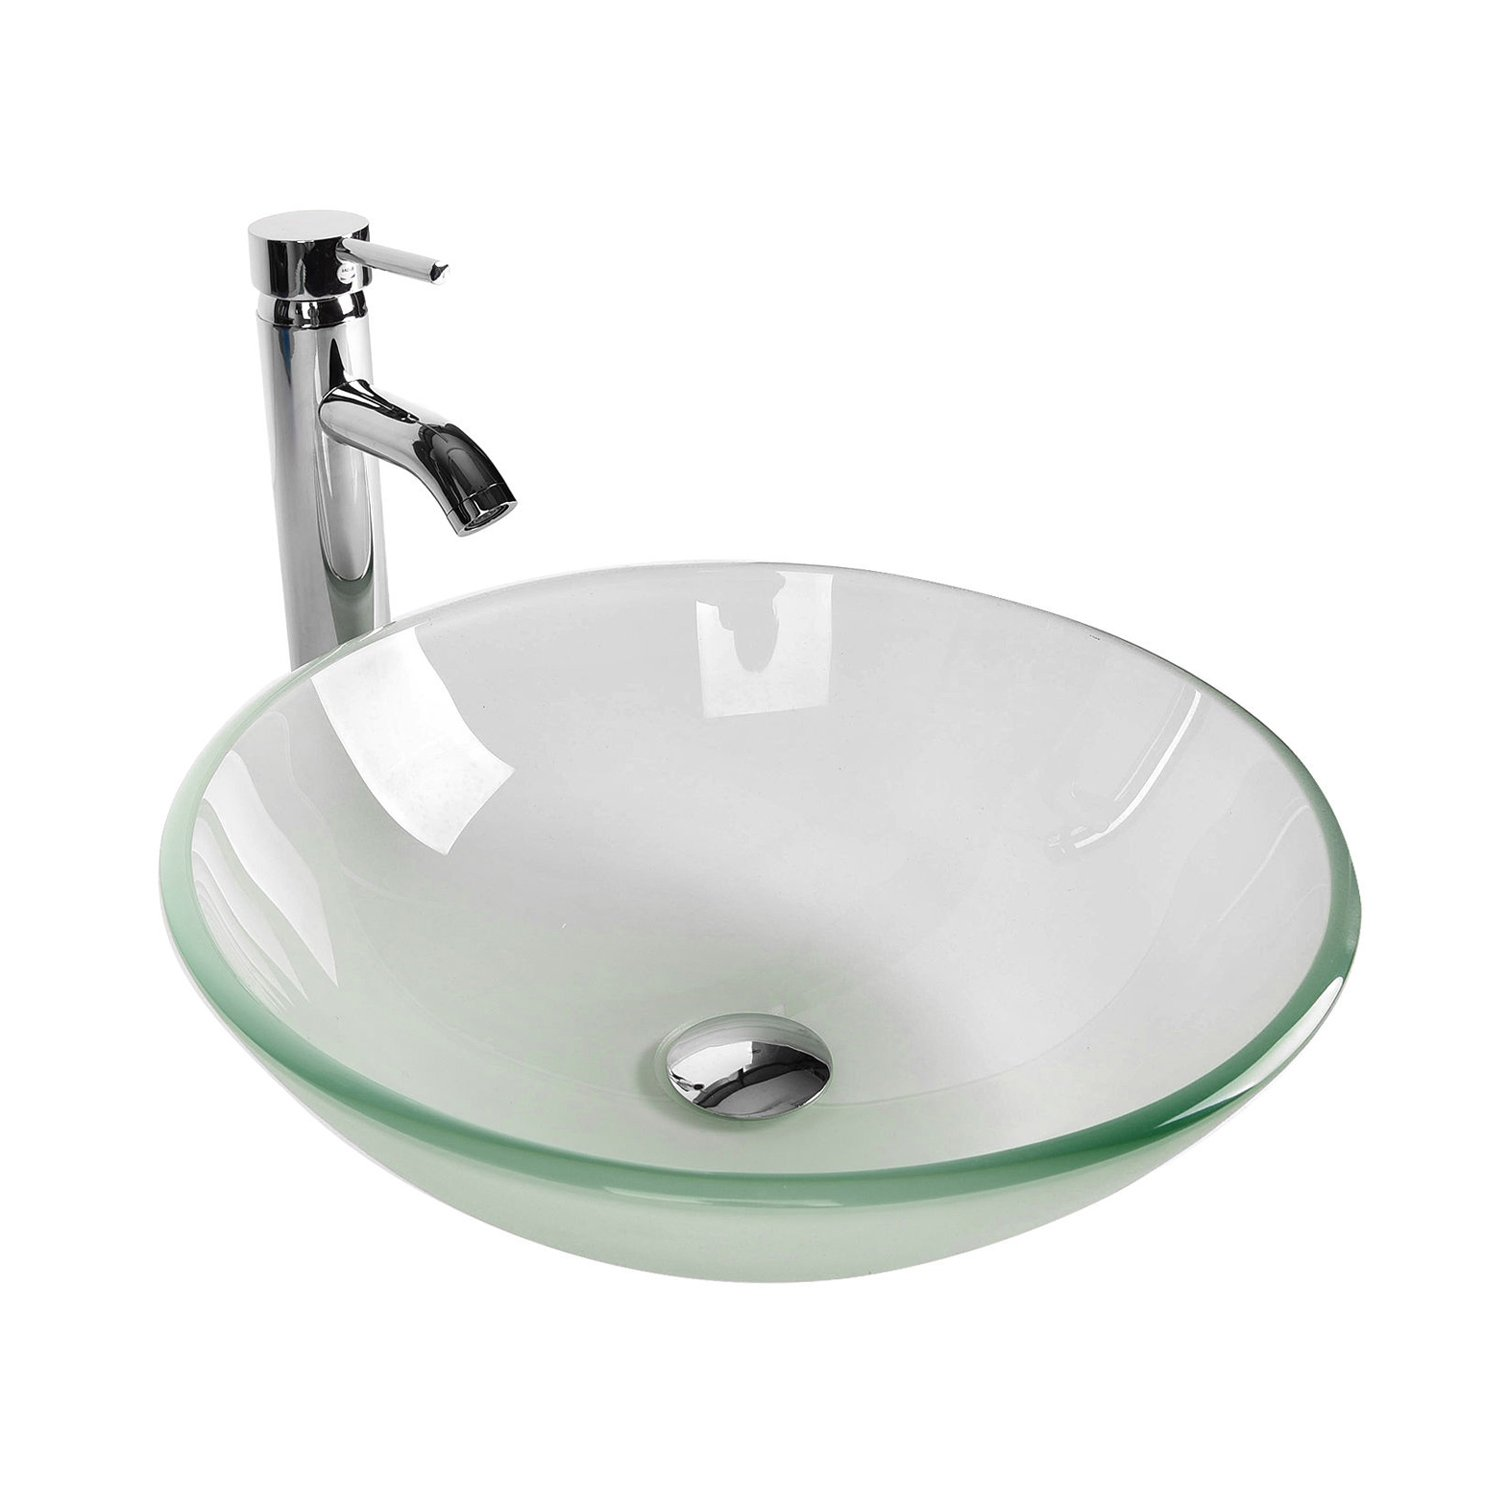 Tempered Glass Vessel Bathroom Vanity Sink Round Bowl, Chorme Faucet & Pop-up Drain Combo, Frosted Color